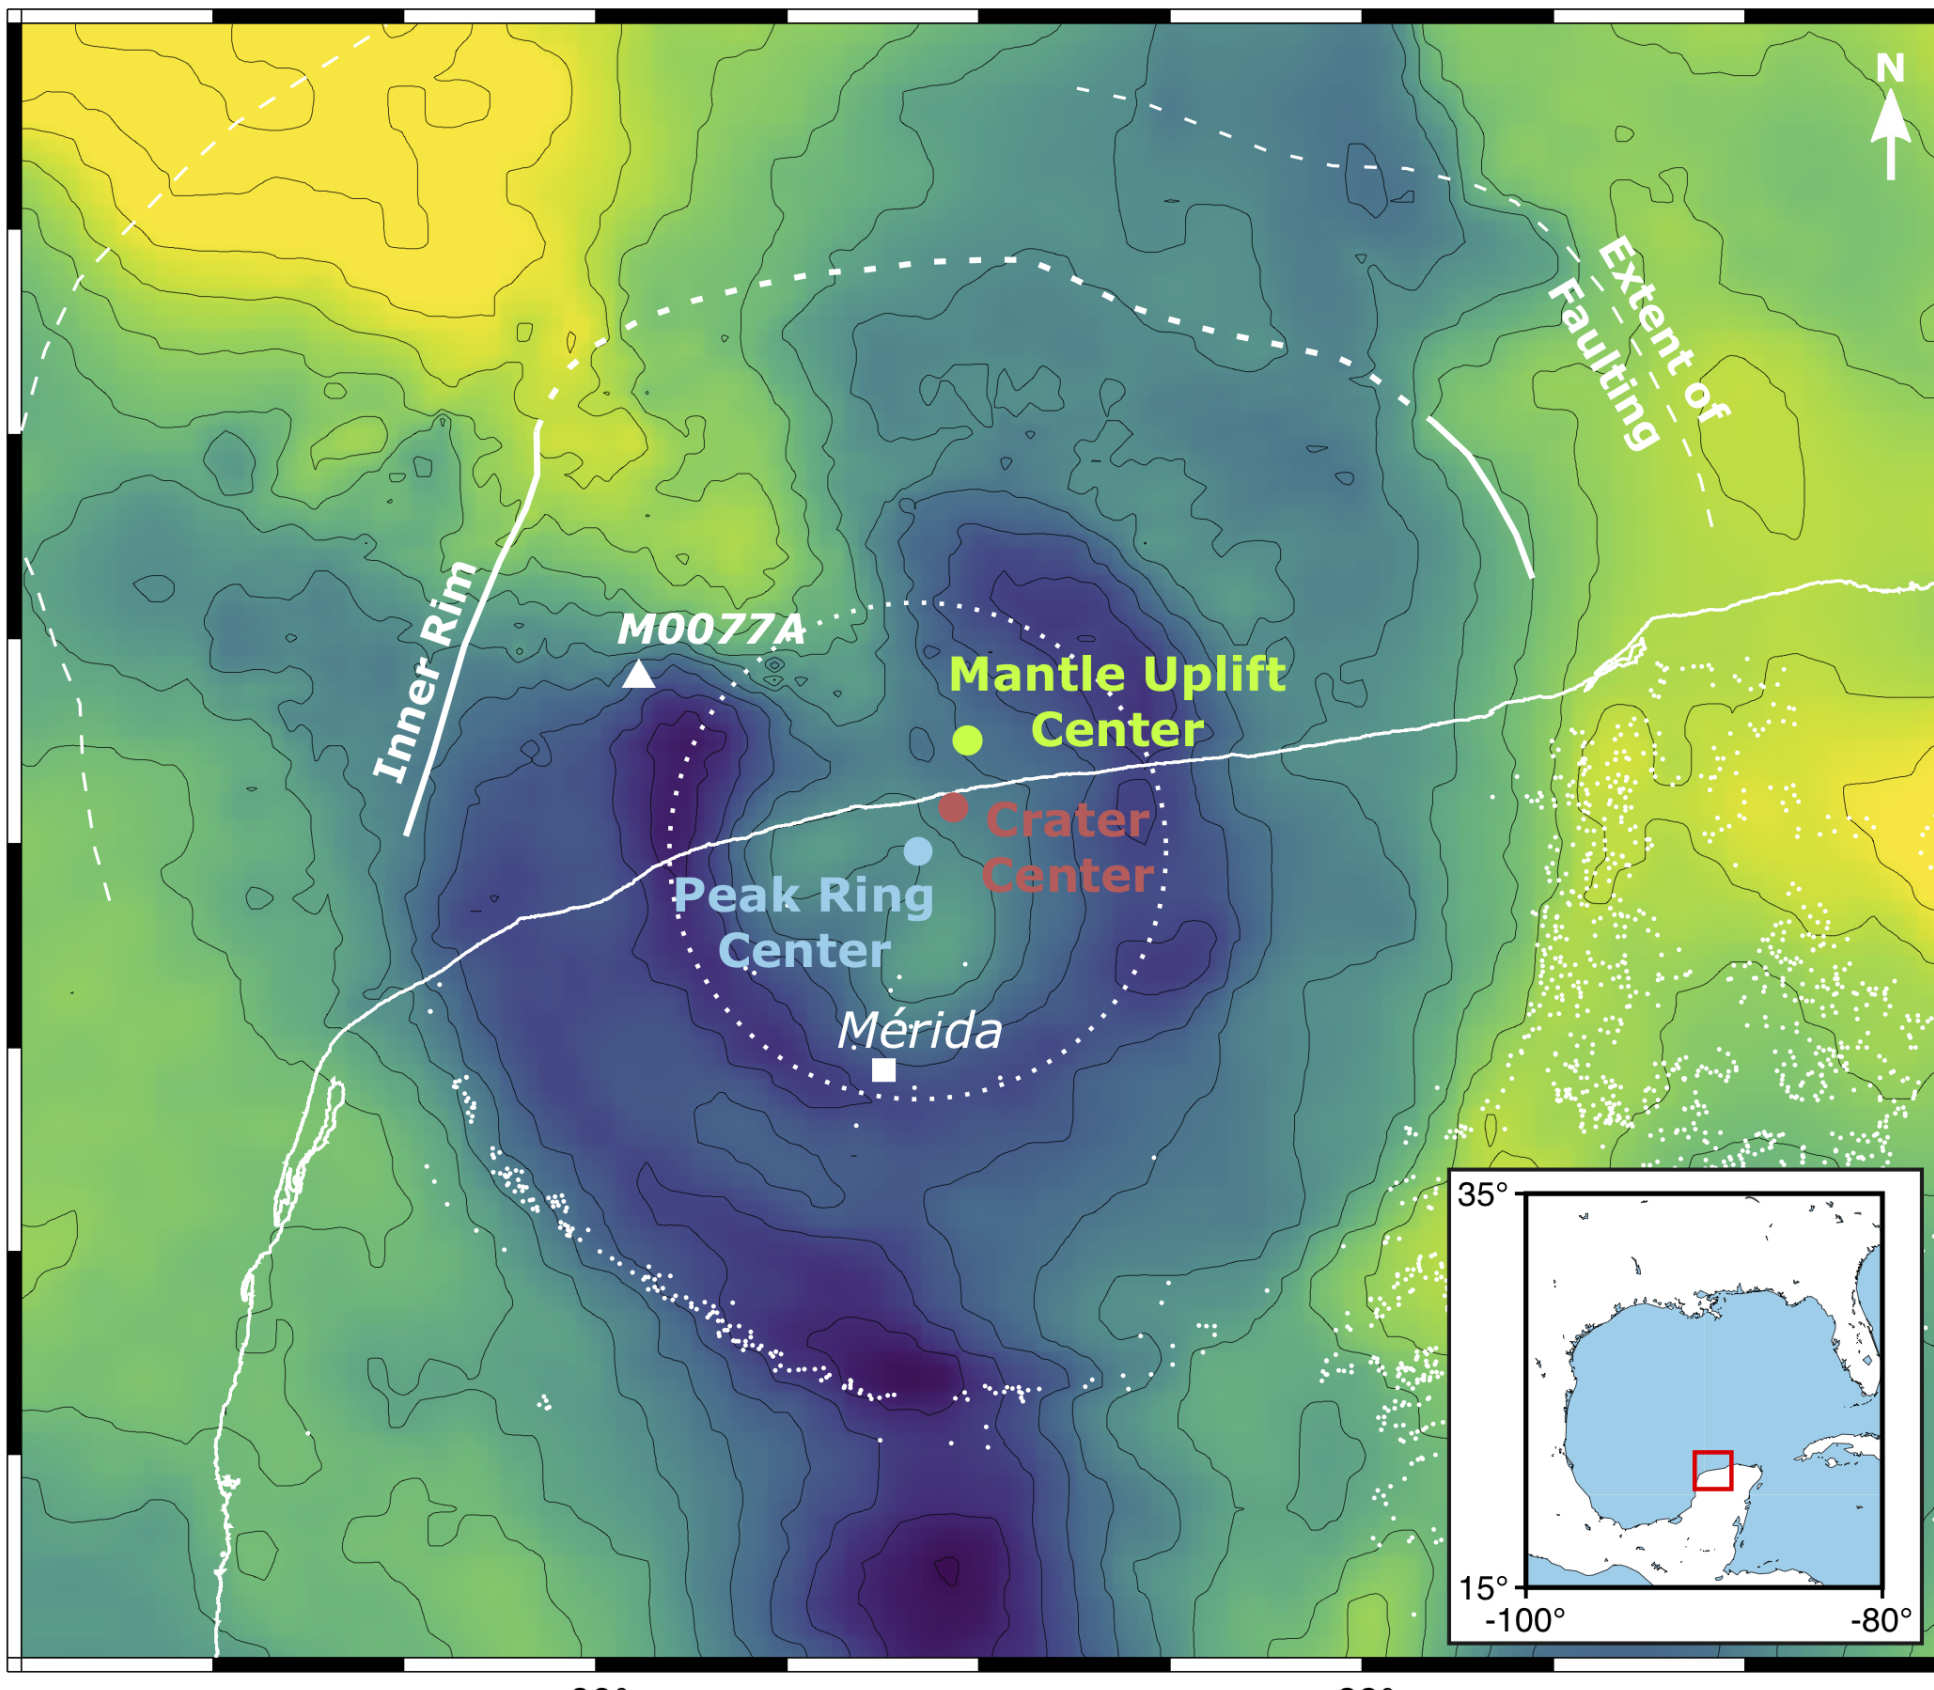 Gravity map showing asymmetries of the Chicxulub crater, Mexico. The red circle marks the crater centre; the green circle marks the centre of maximum mantle uplift; the blue circle marks the centre of the peak ring; the white triangle marks the location of the Expedition 364 drill site through the peak ring. The coastline is displayed with a thin white line; cenotes and sinkholes with white dots, and the city of Mérida with a white square. The dotted lines offshore mark the approximate location of the inner crater rim and the extent of faulting as imaged by seismic data. Inset depicts the regional setting, with red rectangle outlining the region shown in the gravity map.